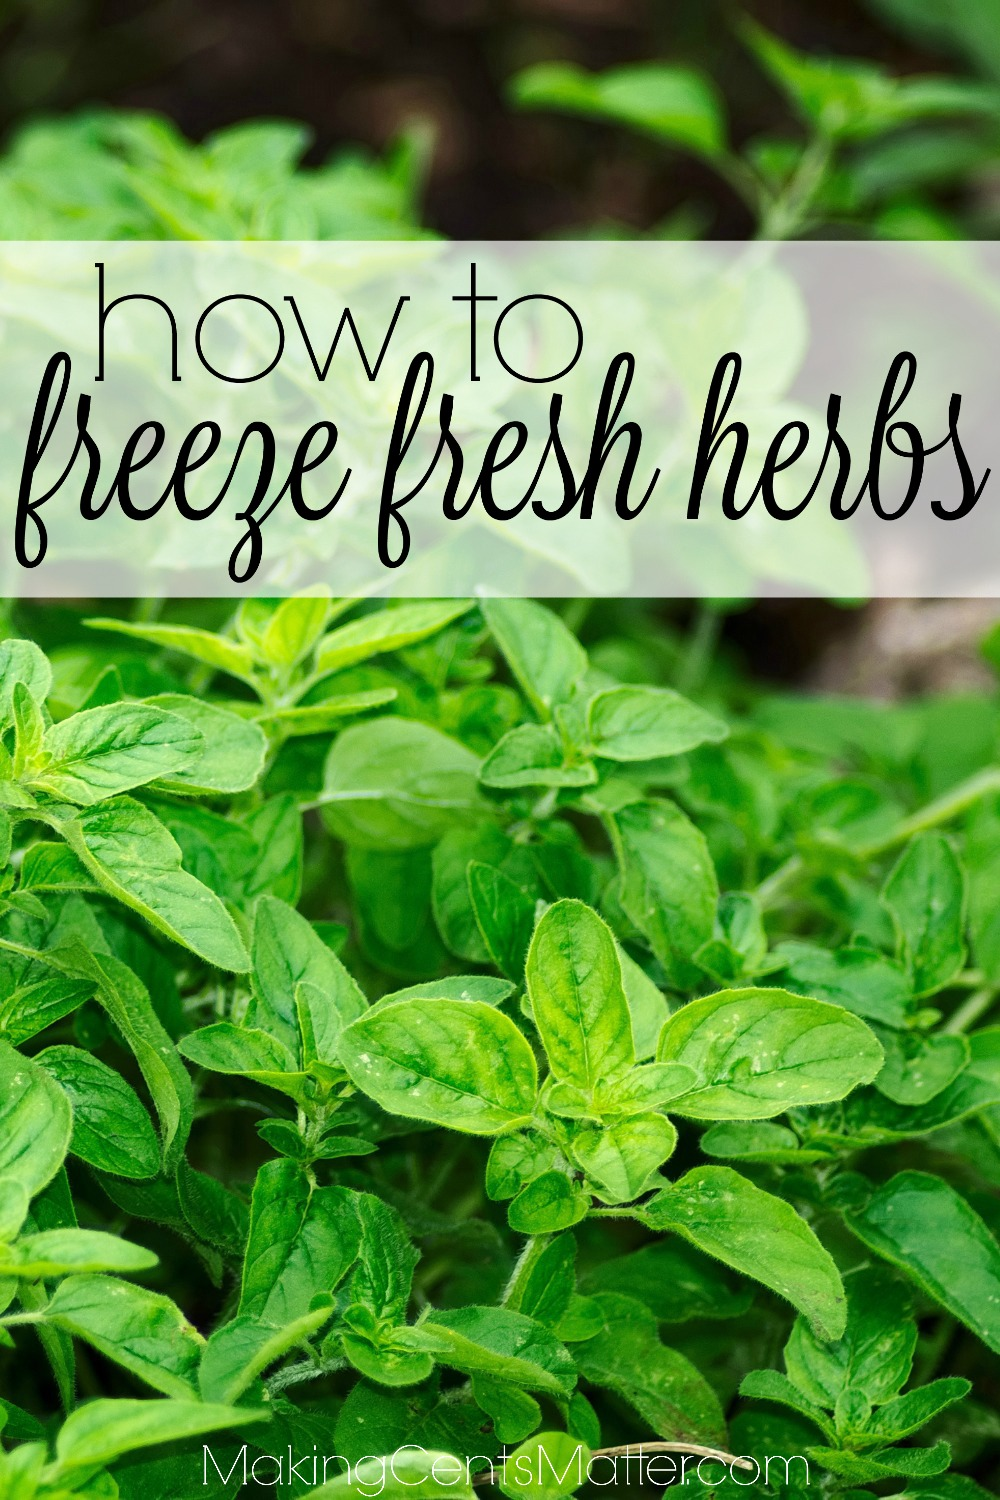 How To Freeze Fresh Herbs